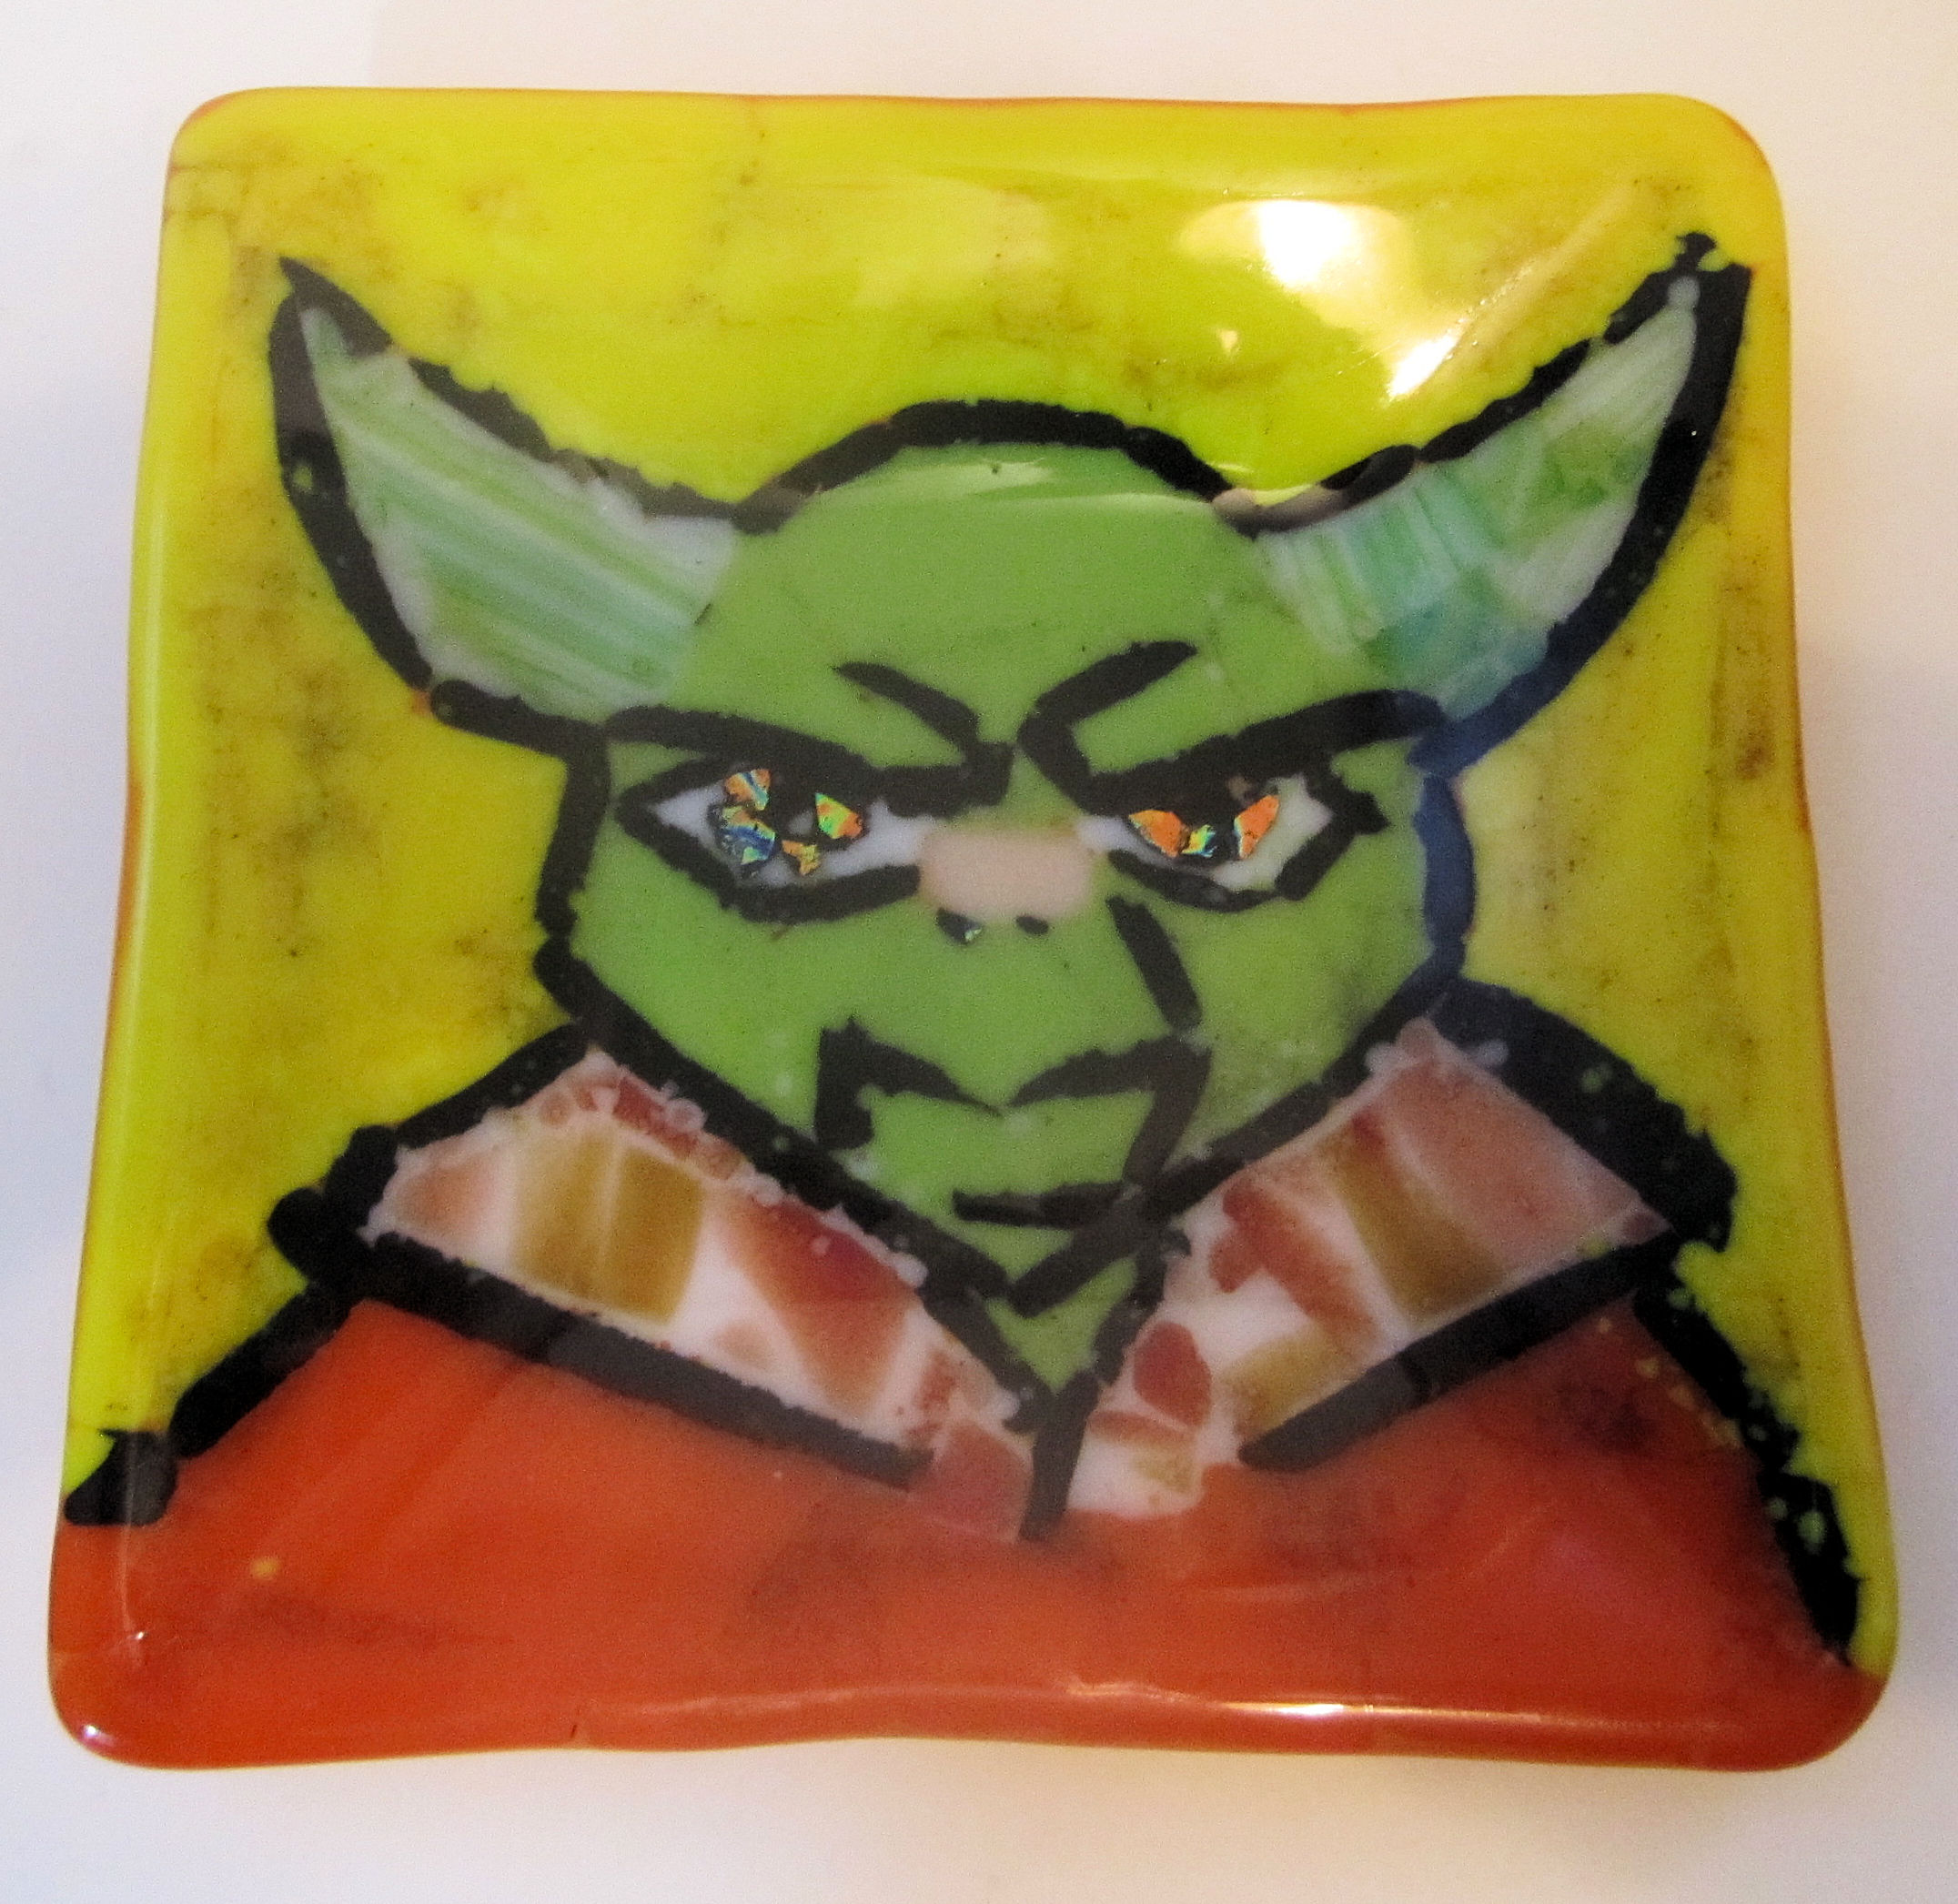 Original Fused Glass Art Plate Yoda, made with glass frit